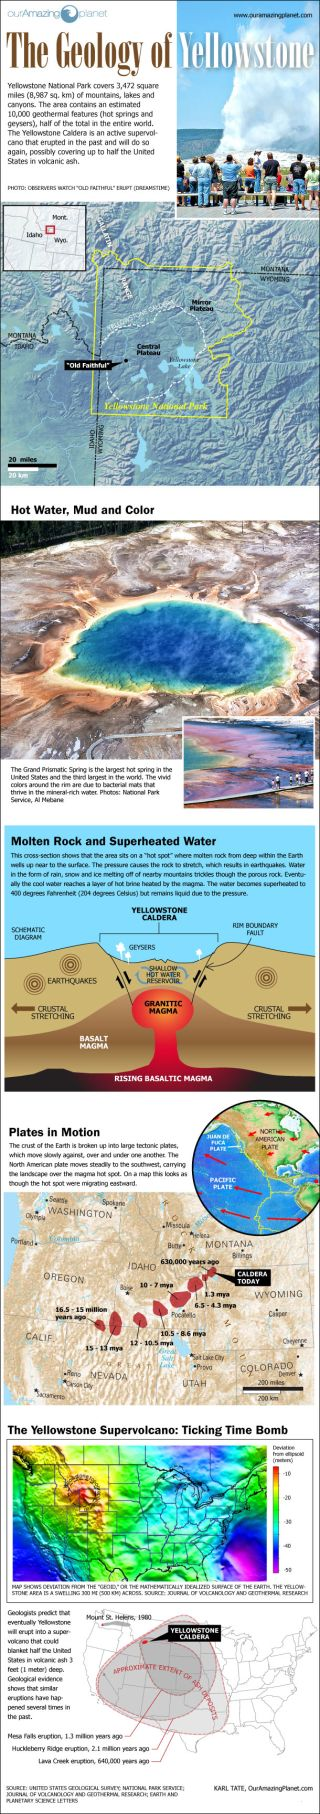 Geology of Yellowstone Infographic